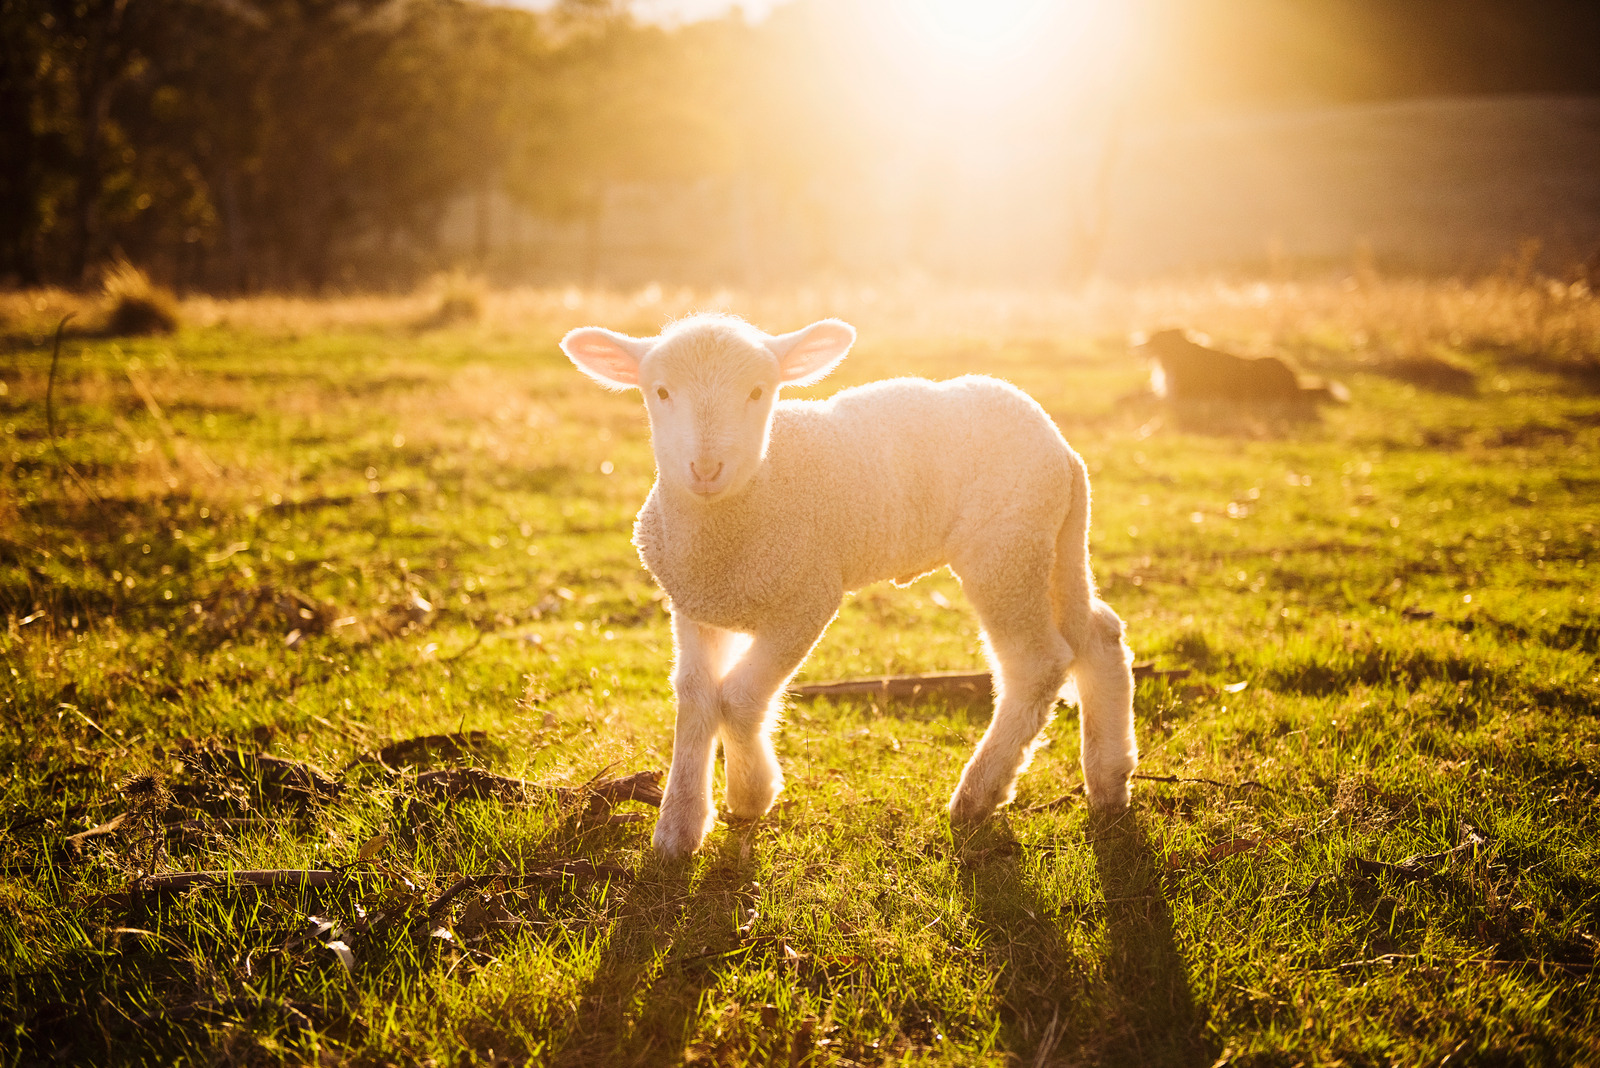 Canva - Shallow Focus Photography of White Sheep on Green Grass